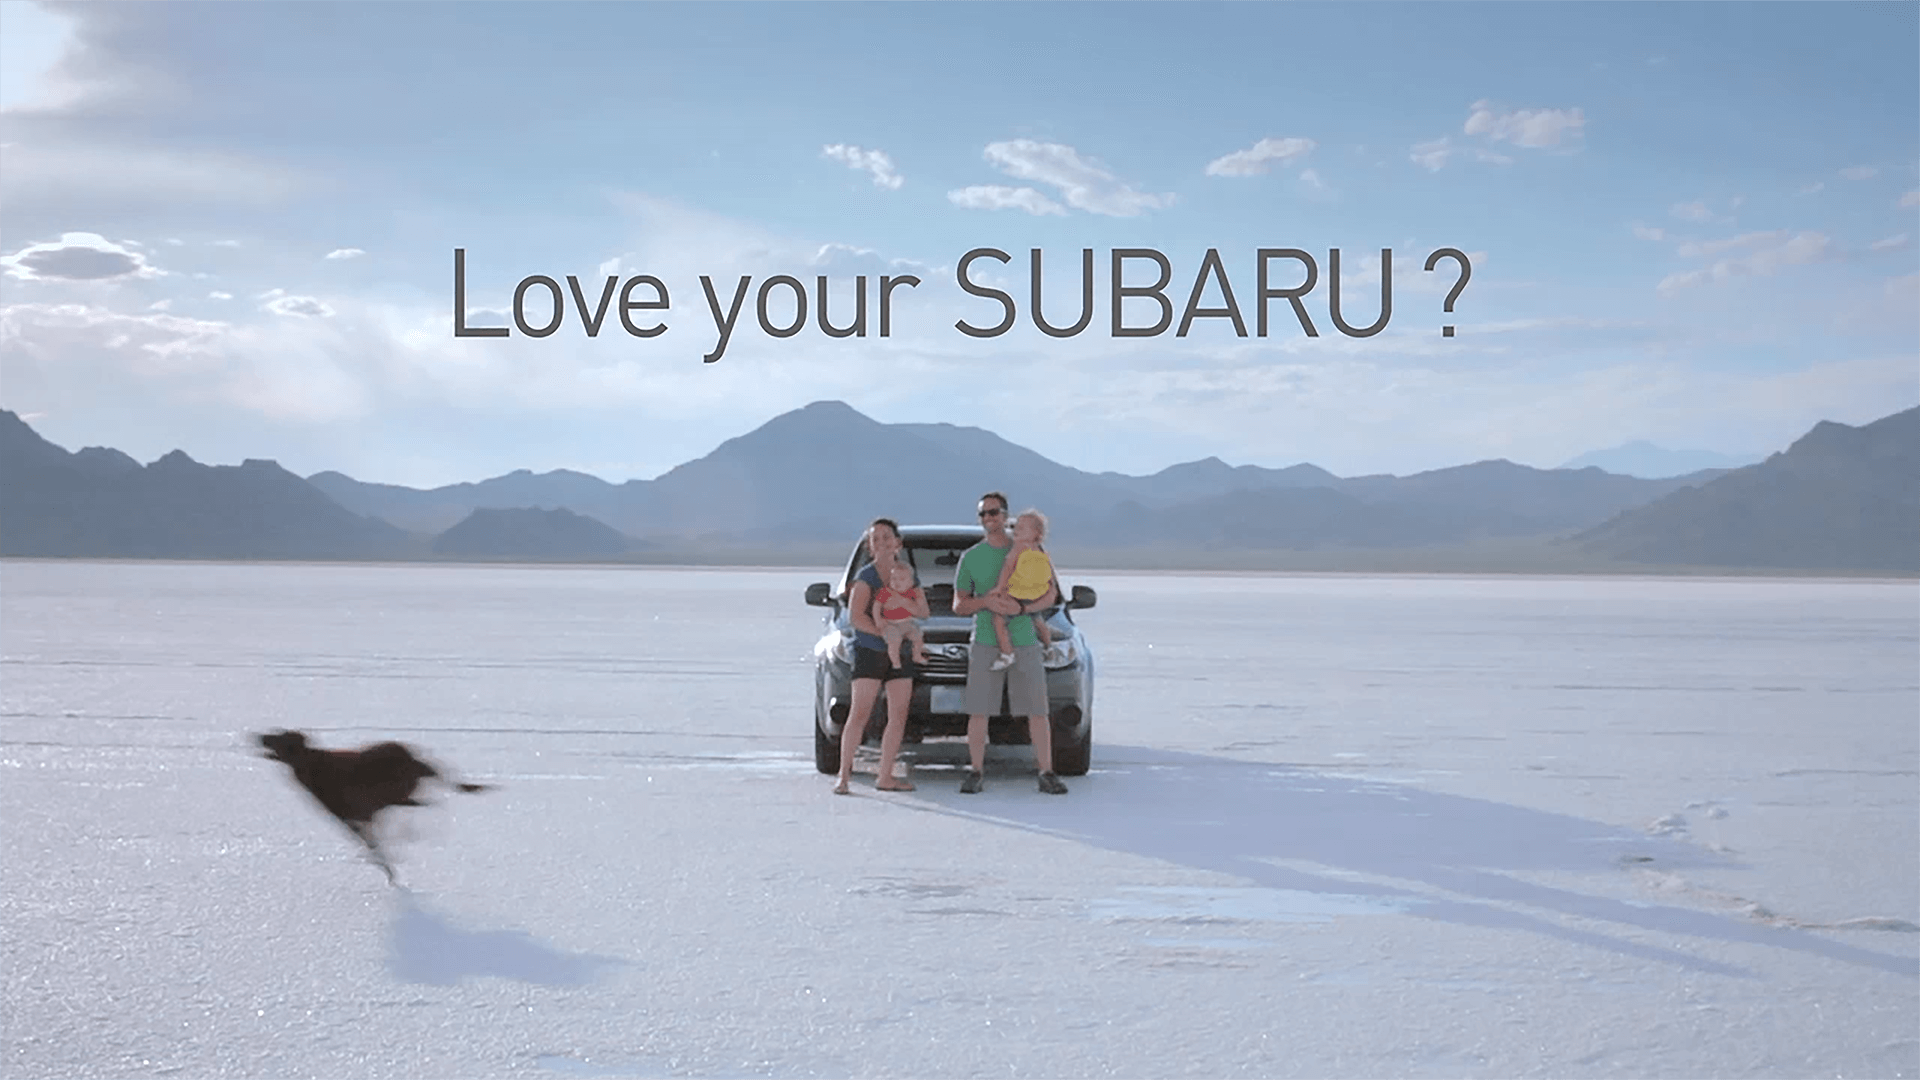 4 subaru 360 degree2